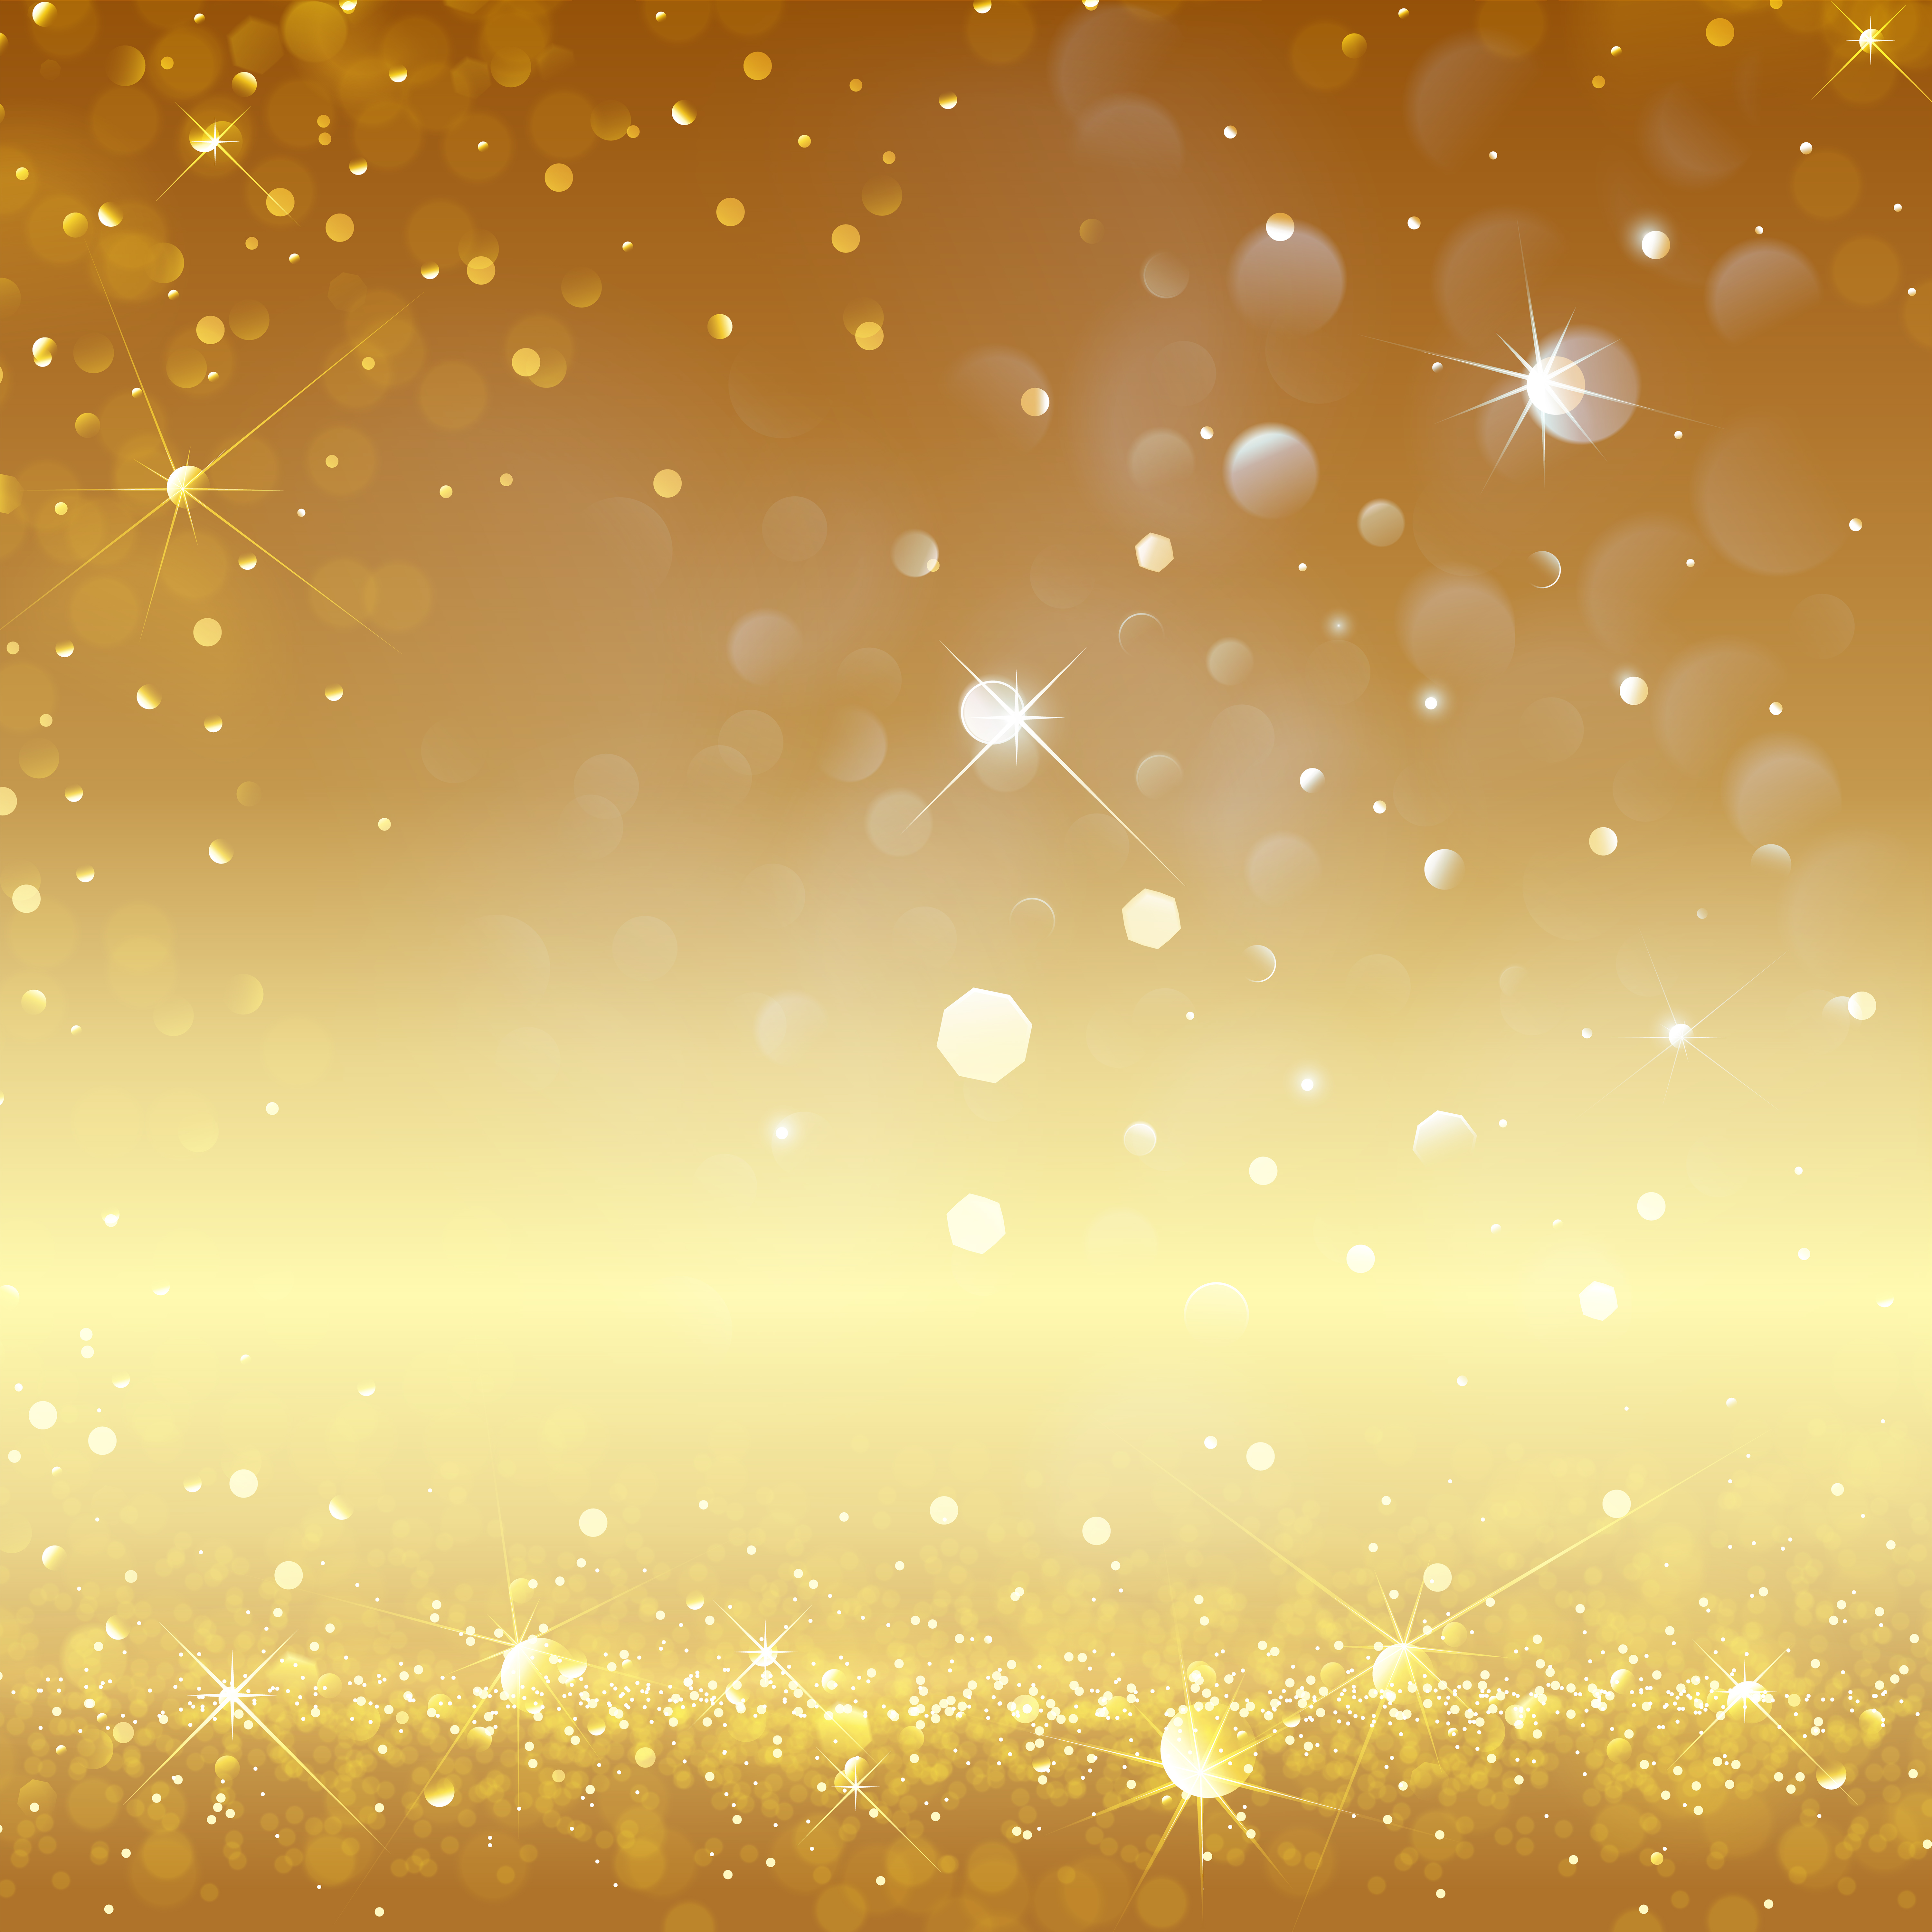 Shining background clipart png transparent Gold Shining Background | Gallery Yopriceville - High ... png transparent